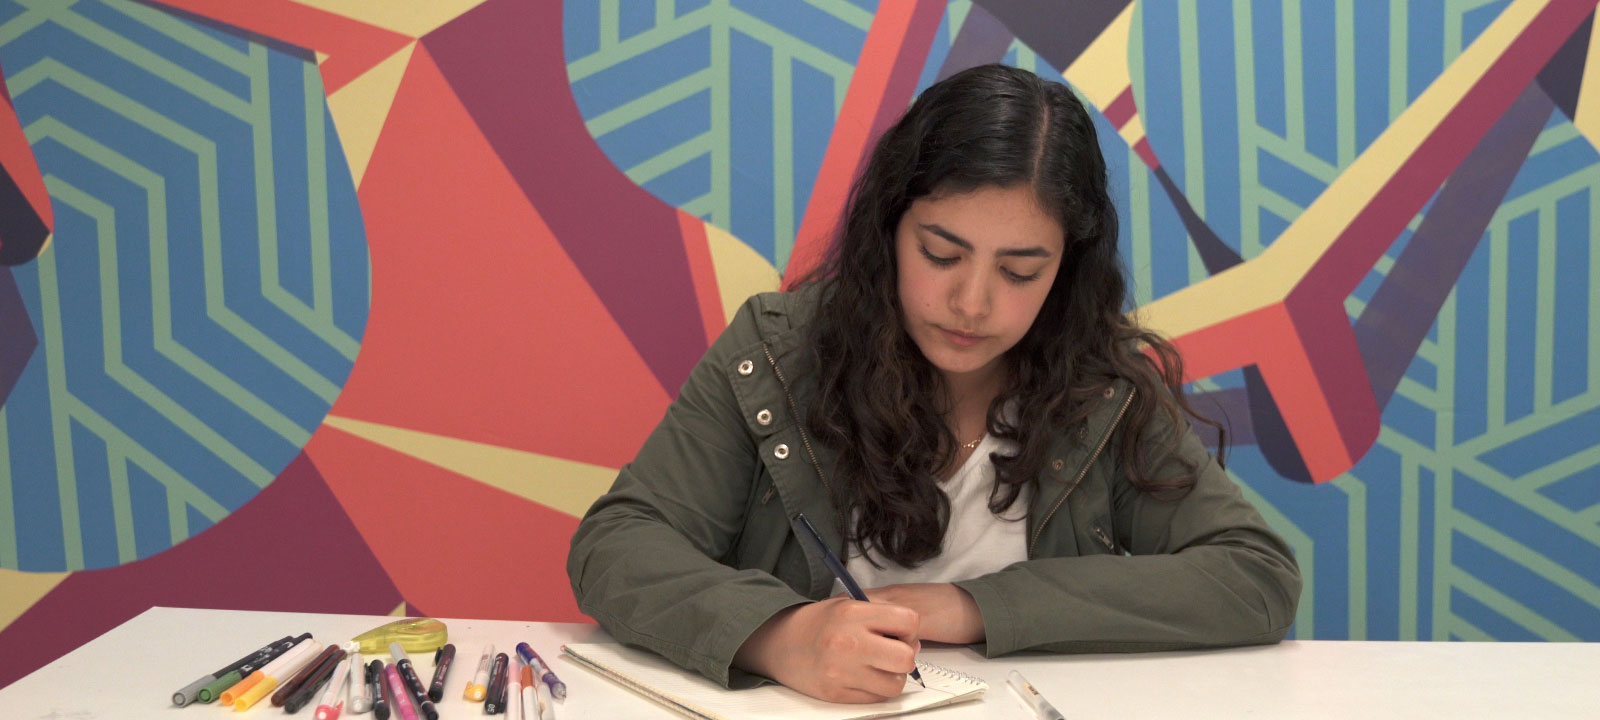 Frida writes in her notebook in front of a colorful wall